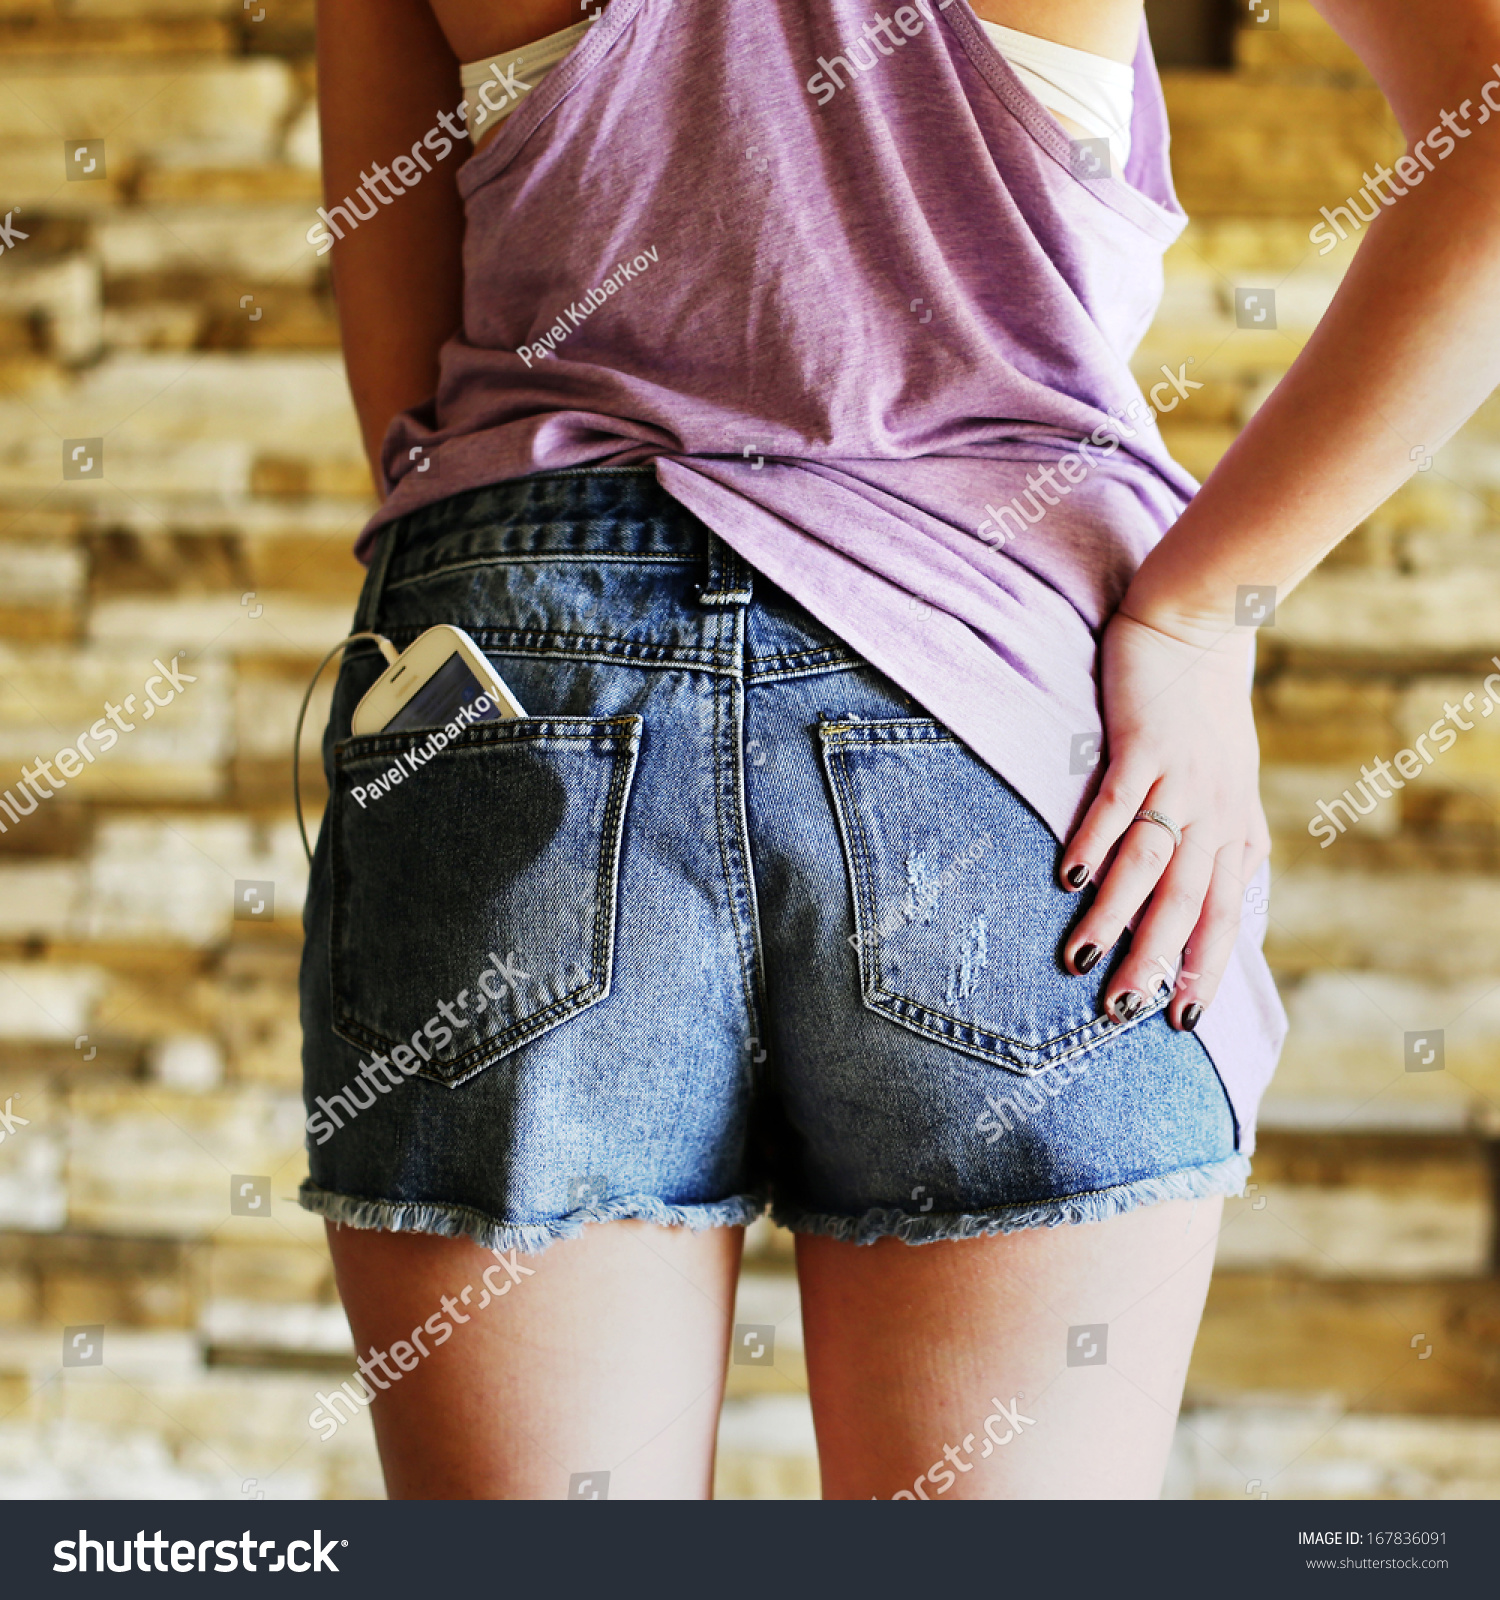 A part of a back and ass in shorts